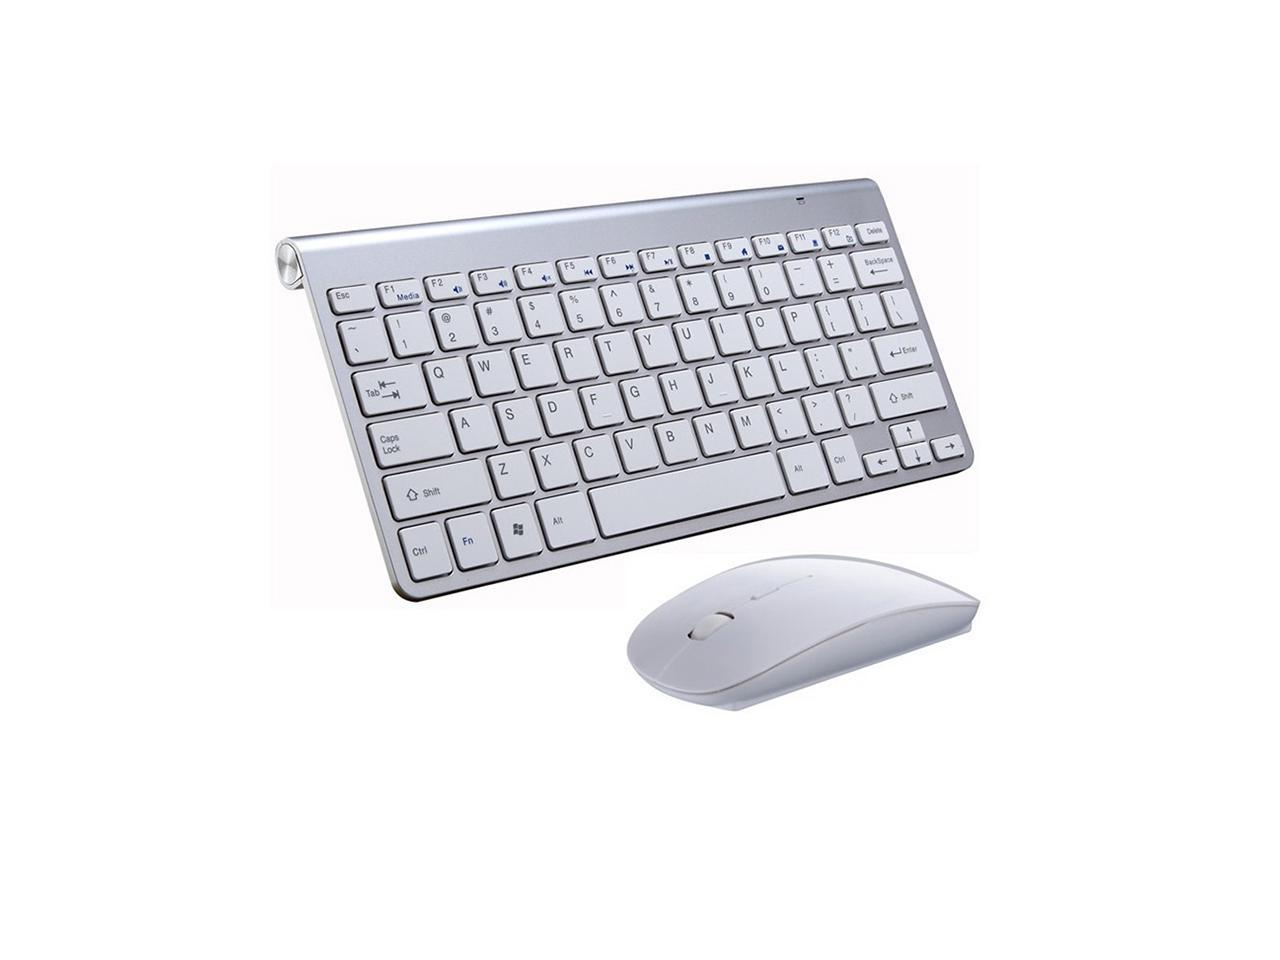 HF-KWM01: 2.4GHz Ultra-Thin Wireless 2.4G keyboard and Mouse Combo w/KB Cover